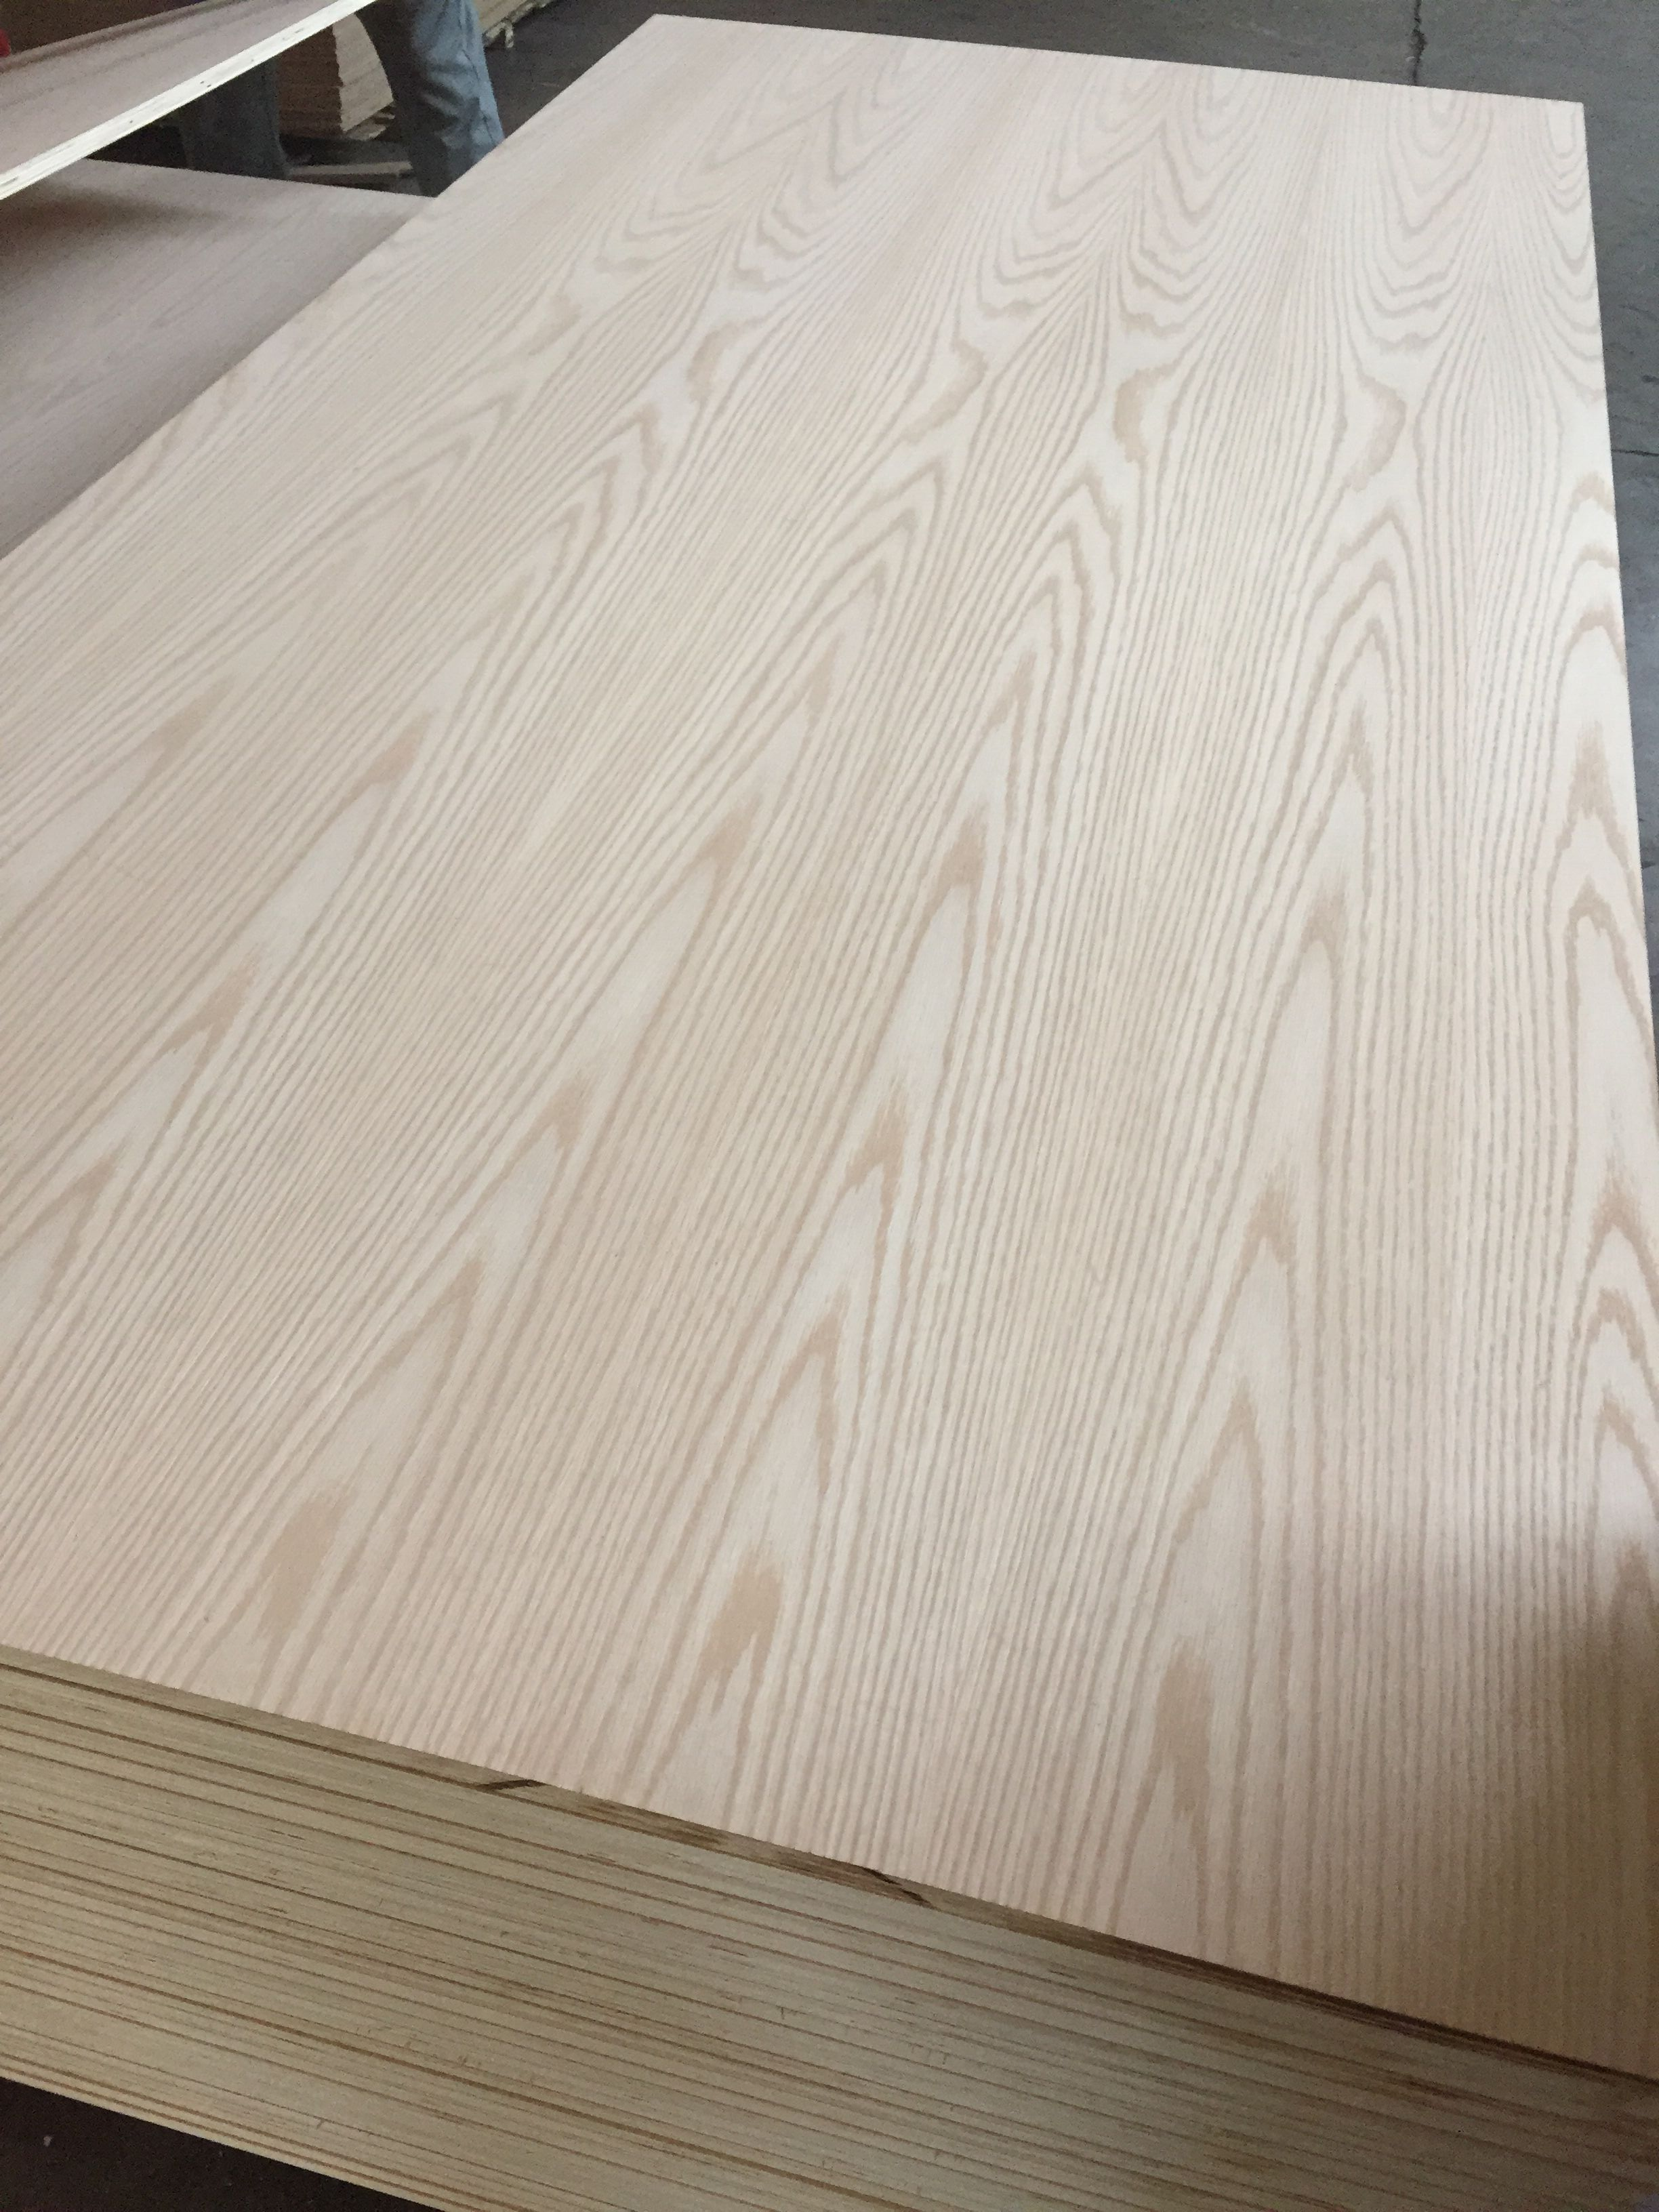 5mm red oak veneer faced MDF